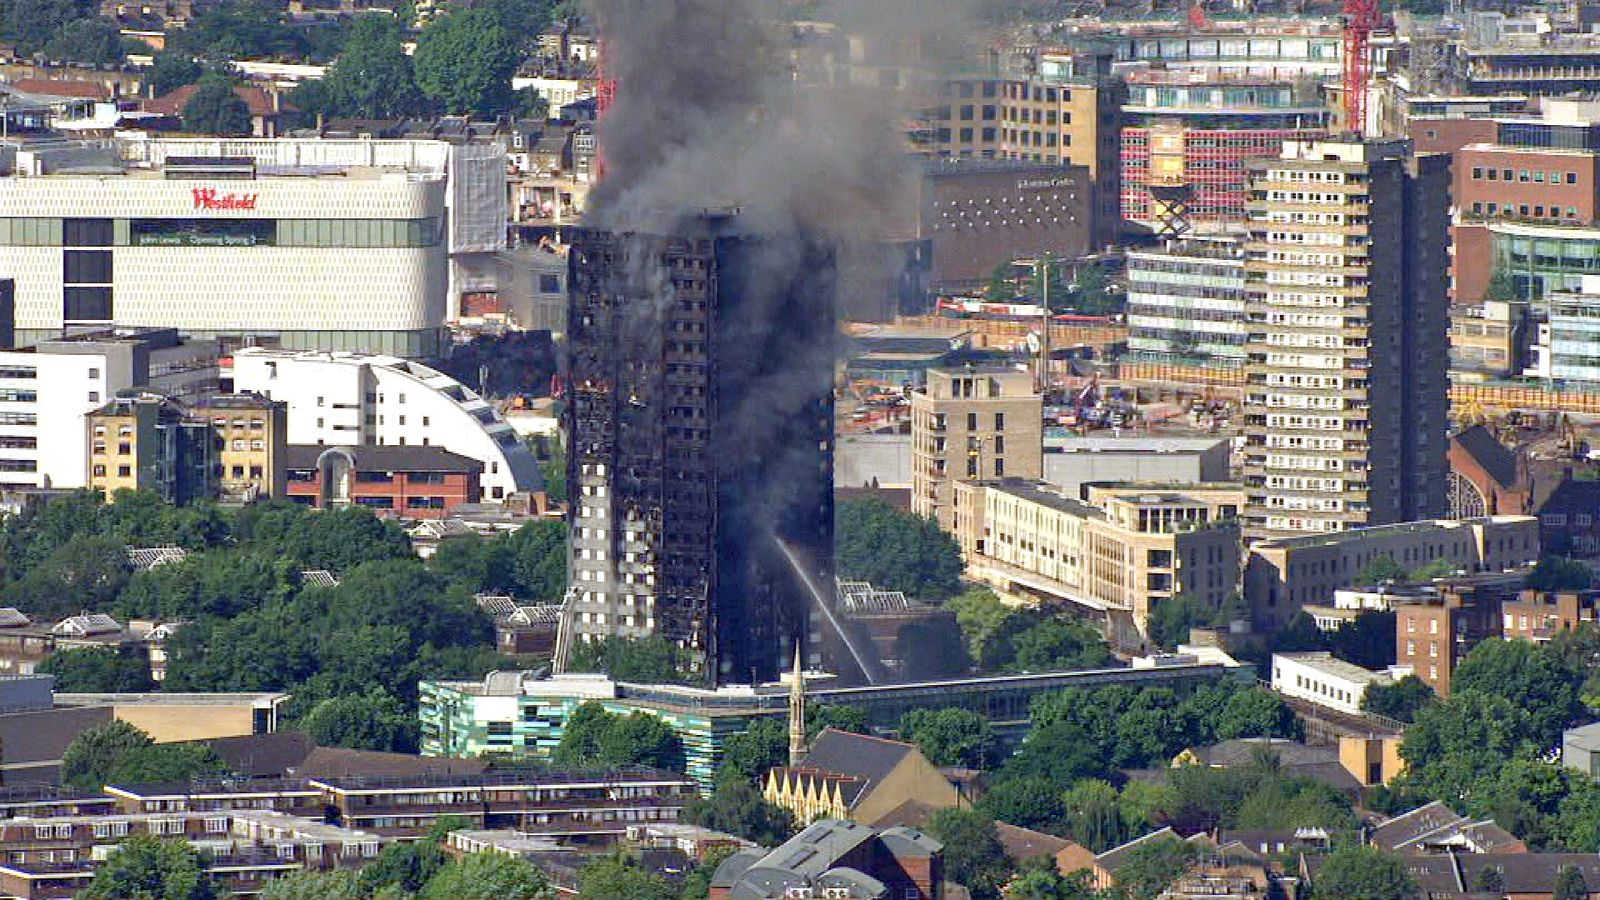 London tower fire: What do we know?